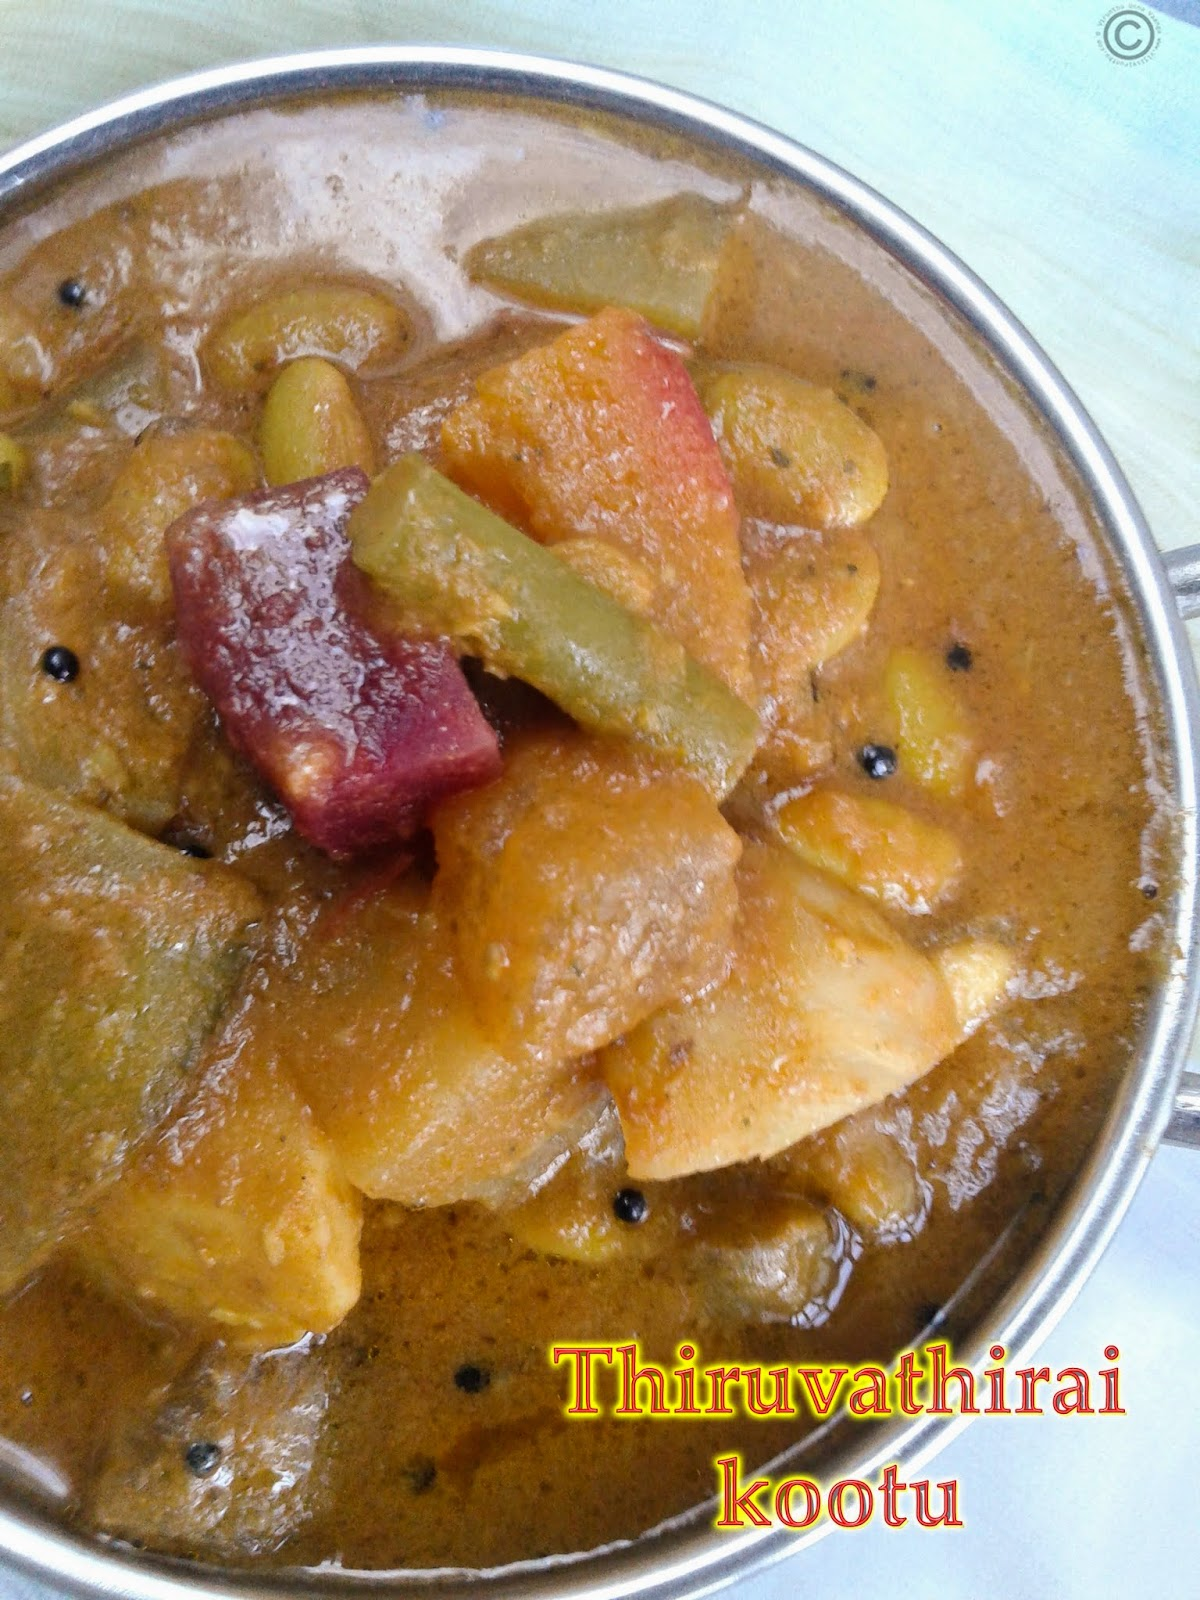 thiruvathirai-kootu-recipe